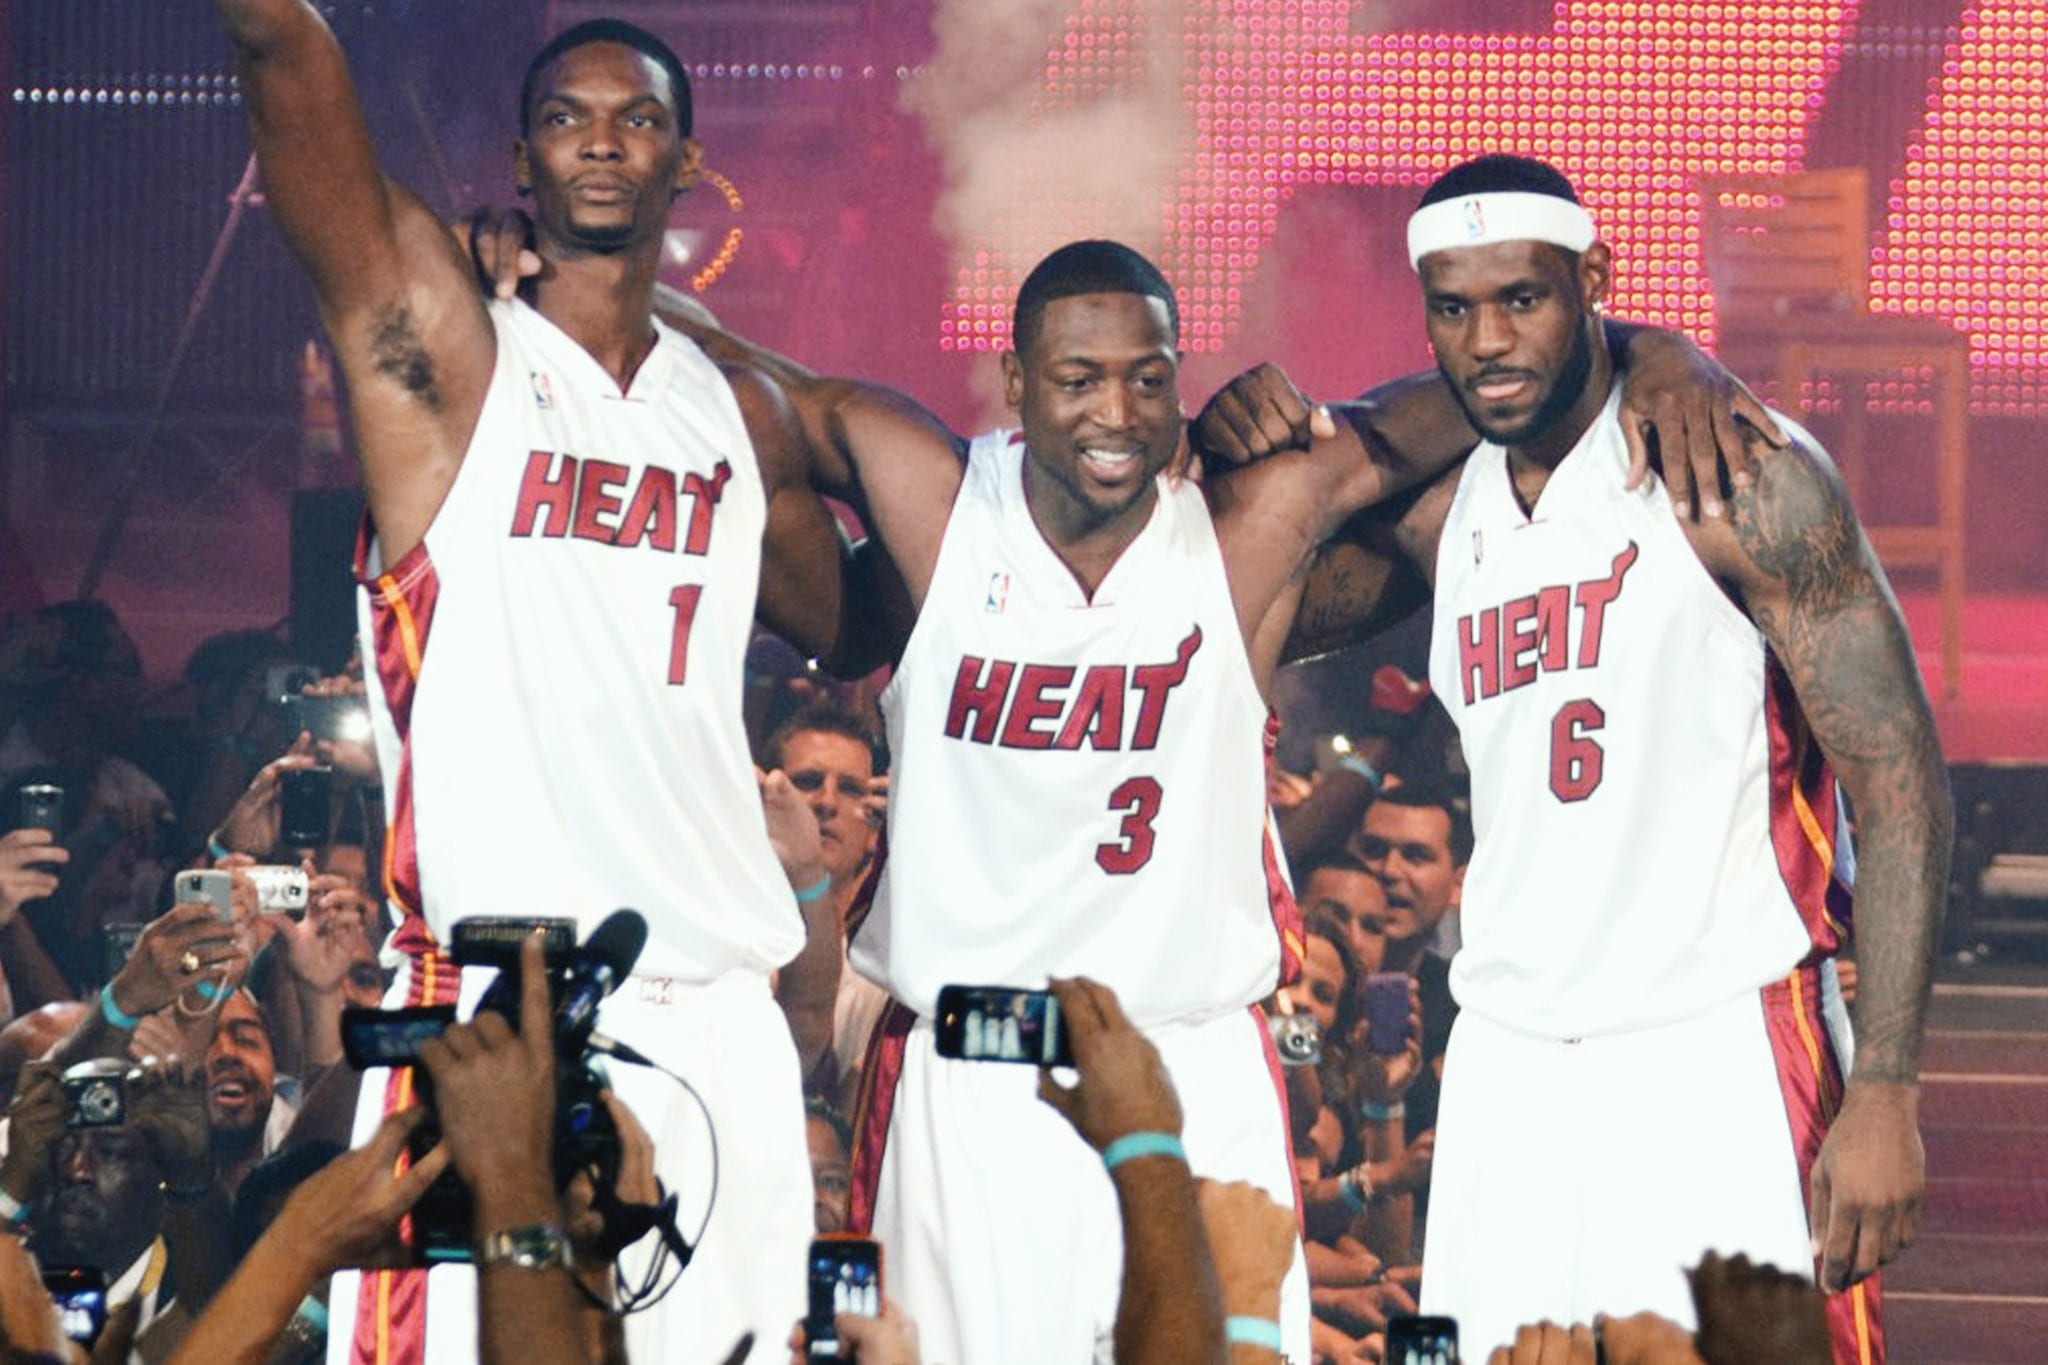 NOT ONE, NOT TWO, NOT THREE: Chris Bosh, Dwyane Wade and LeBron James live it up at the Miami Heat's Big 3 welcome party (November 20, 2010).